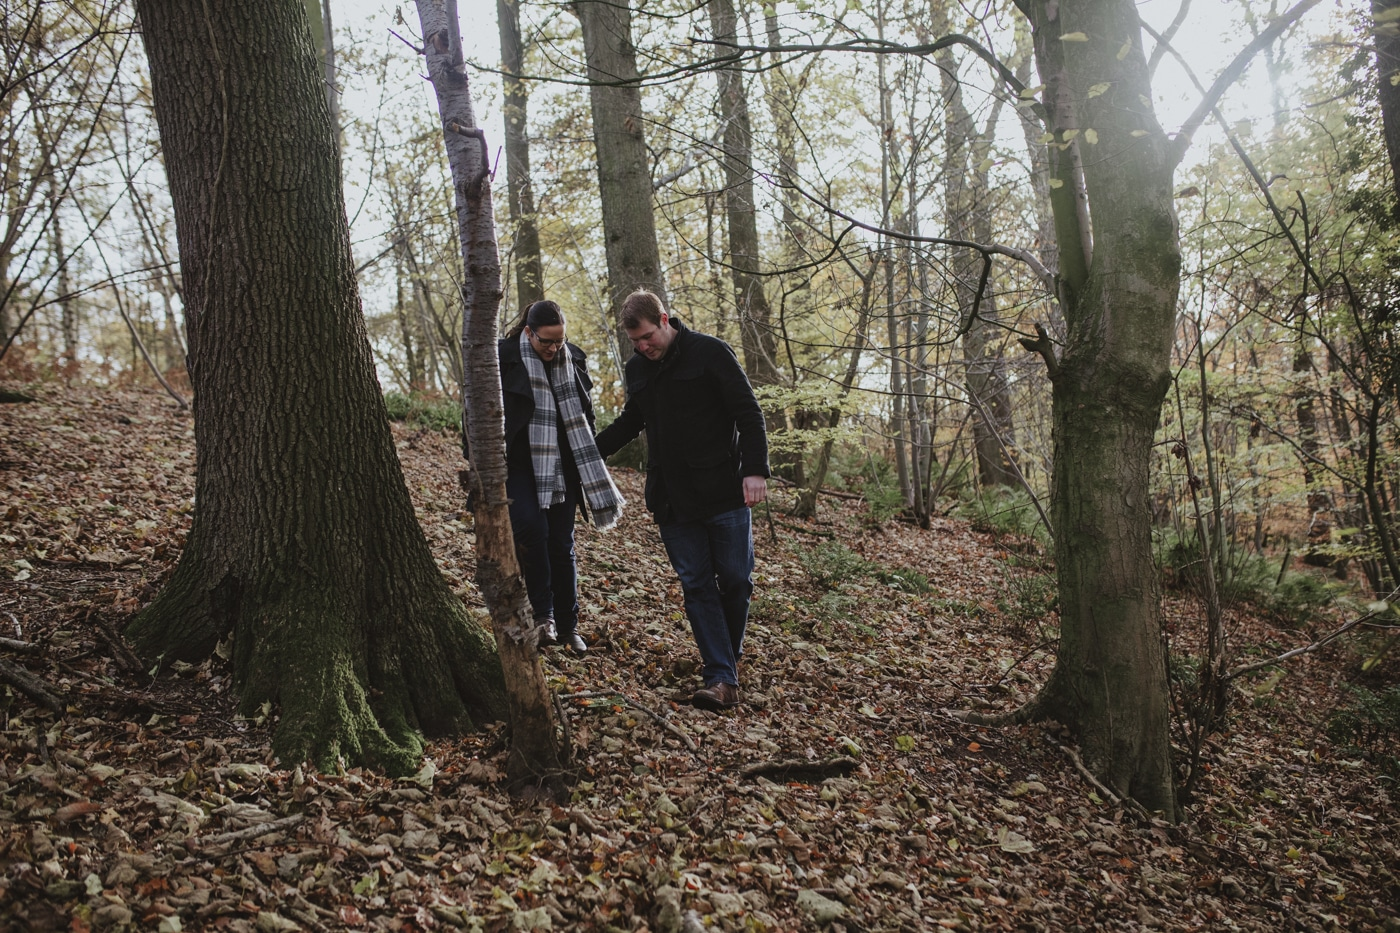 Man helping fiance down steep slope in leaves and woods by Joshua Wyborn Photographic